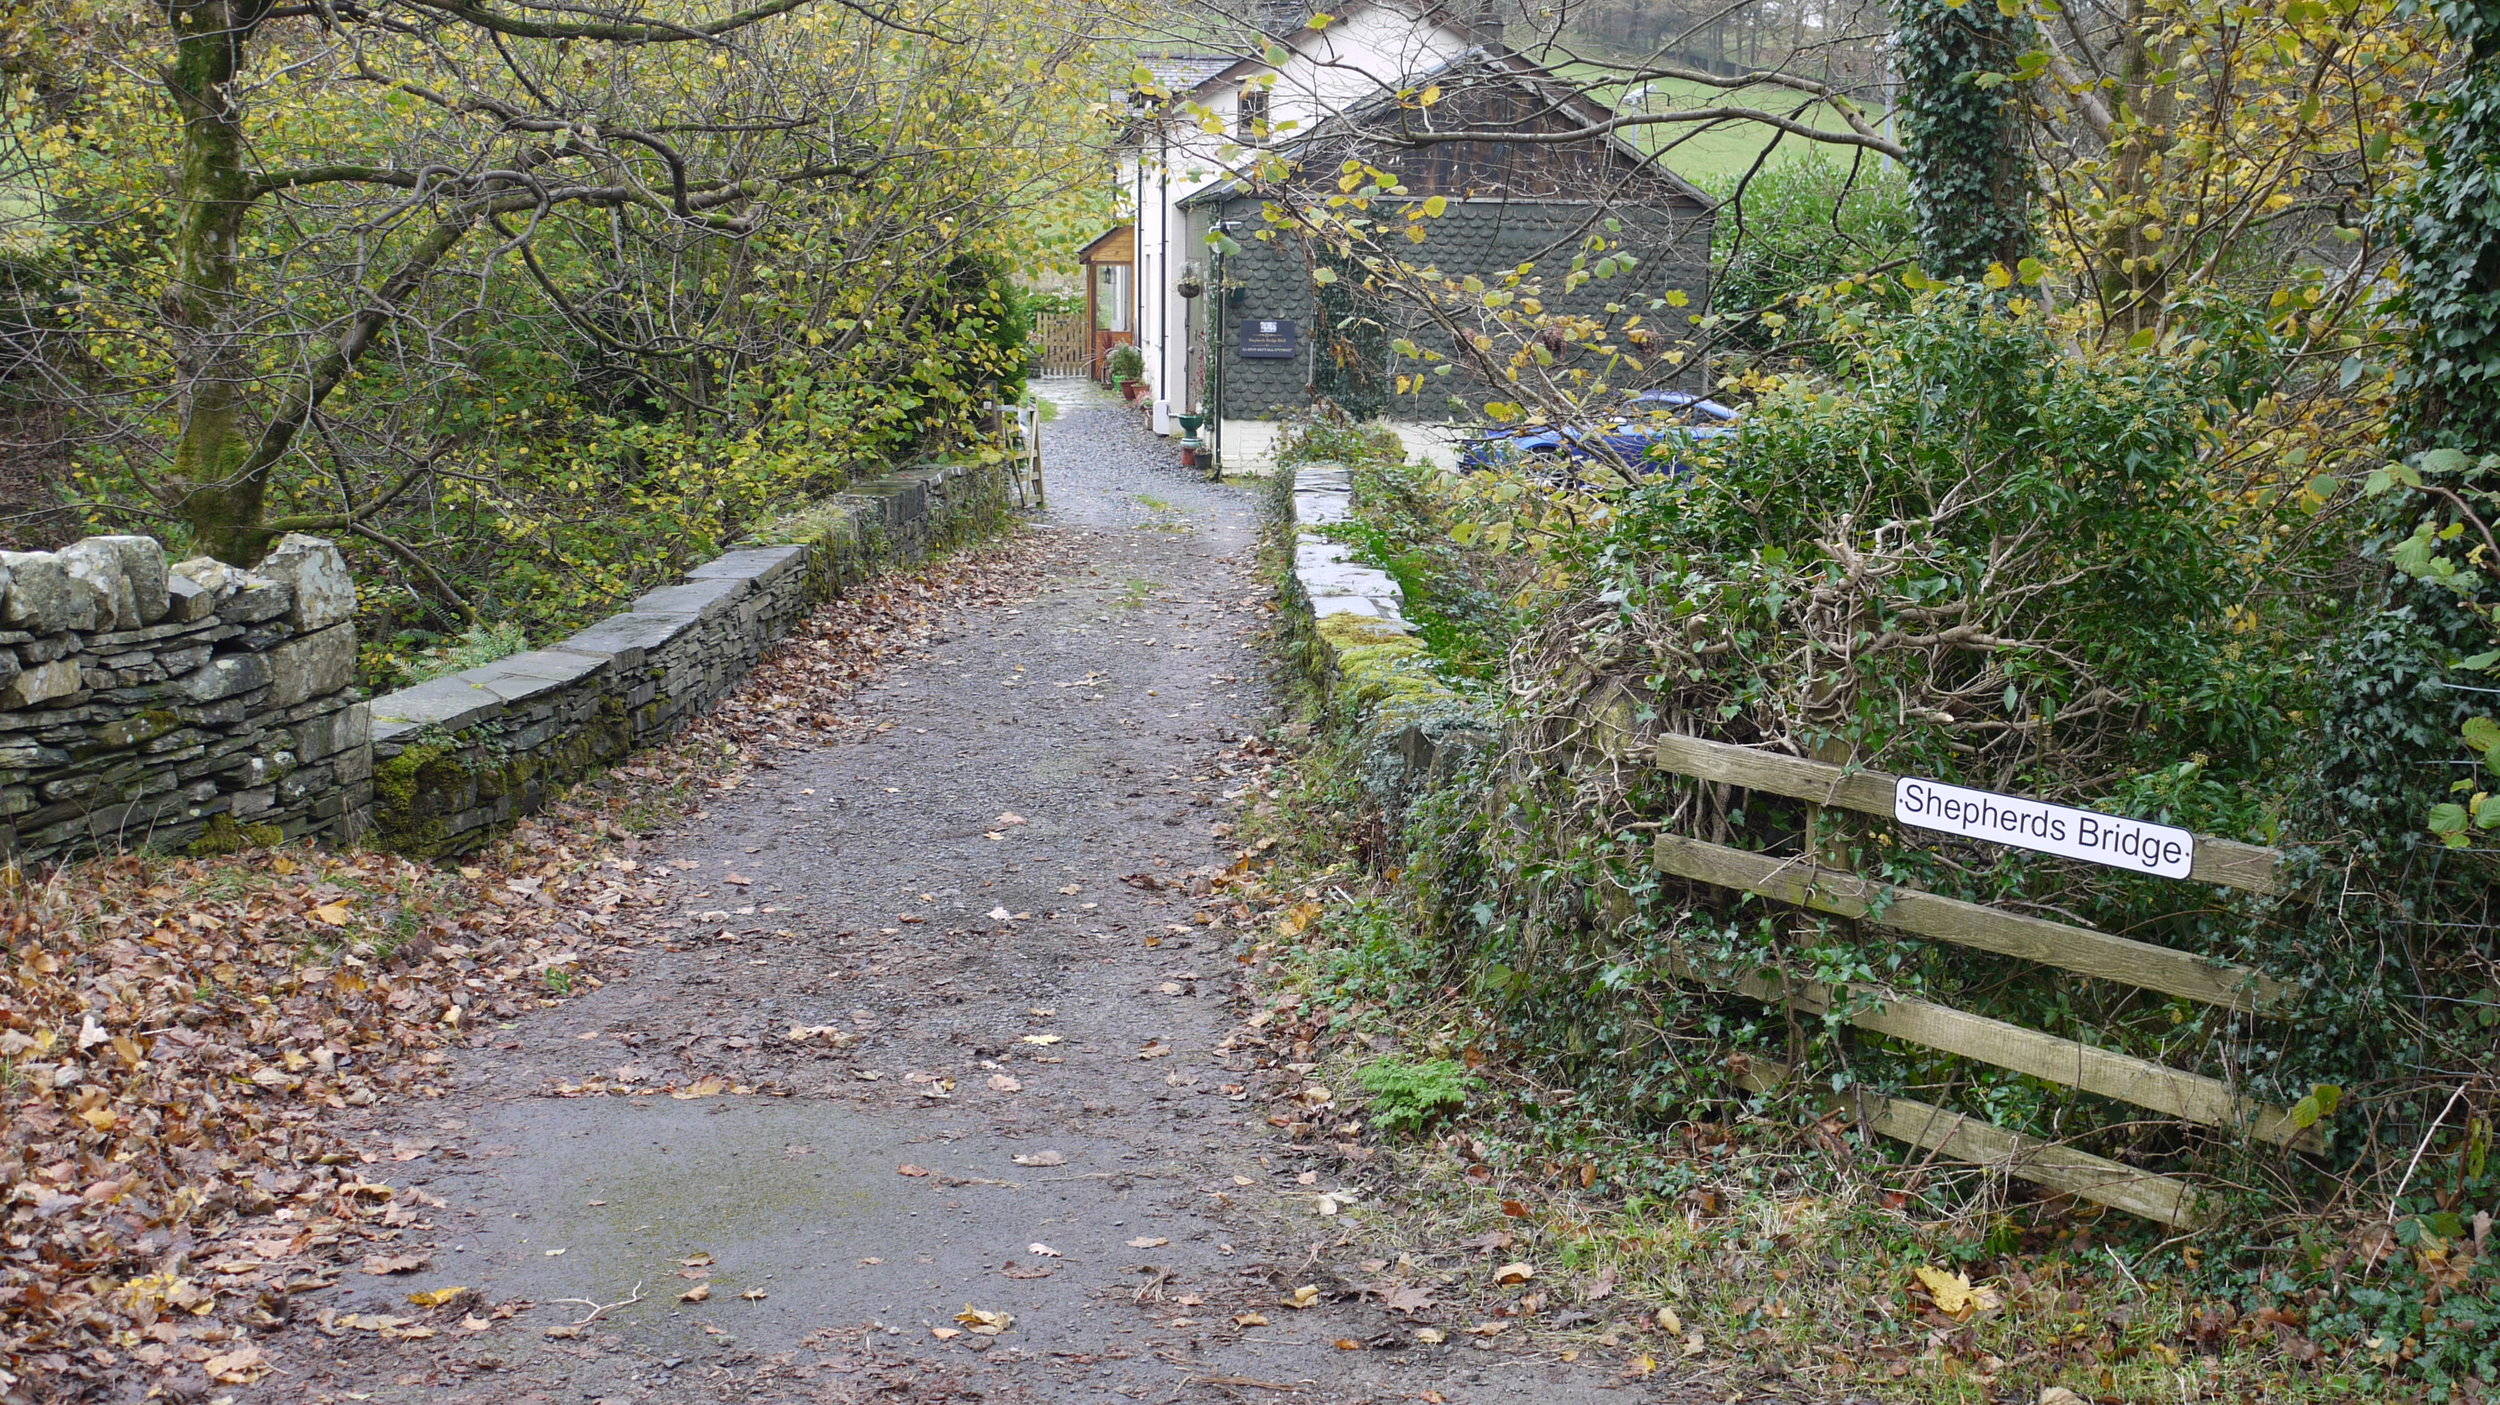 Entrance to Shepherds Bridge B&B